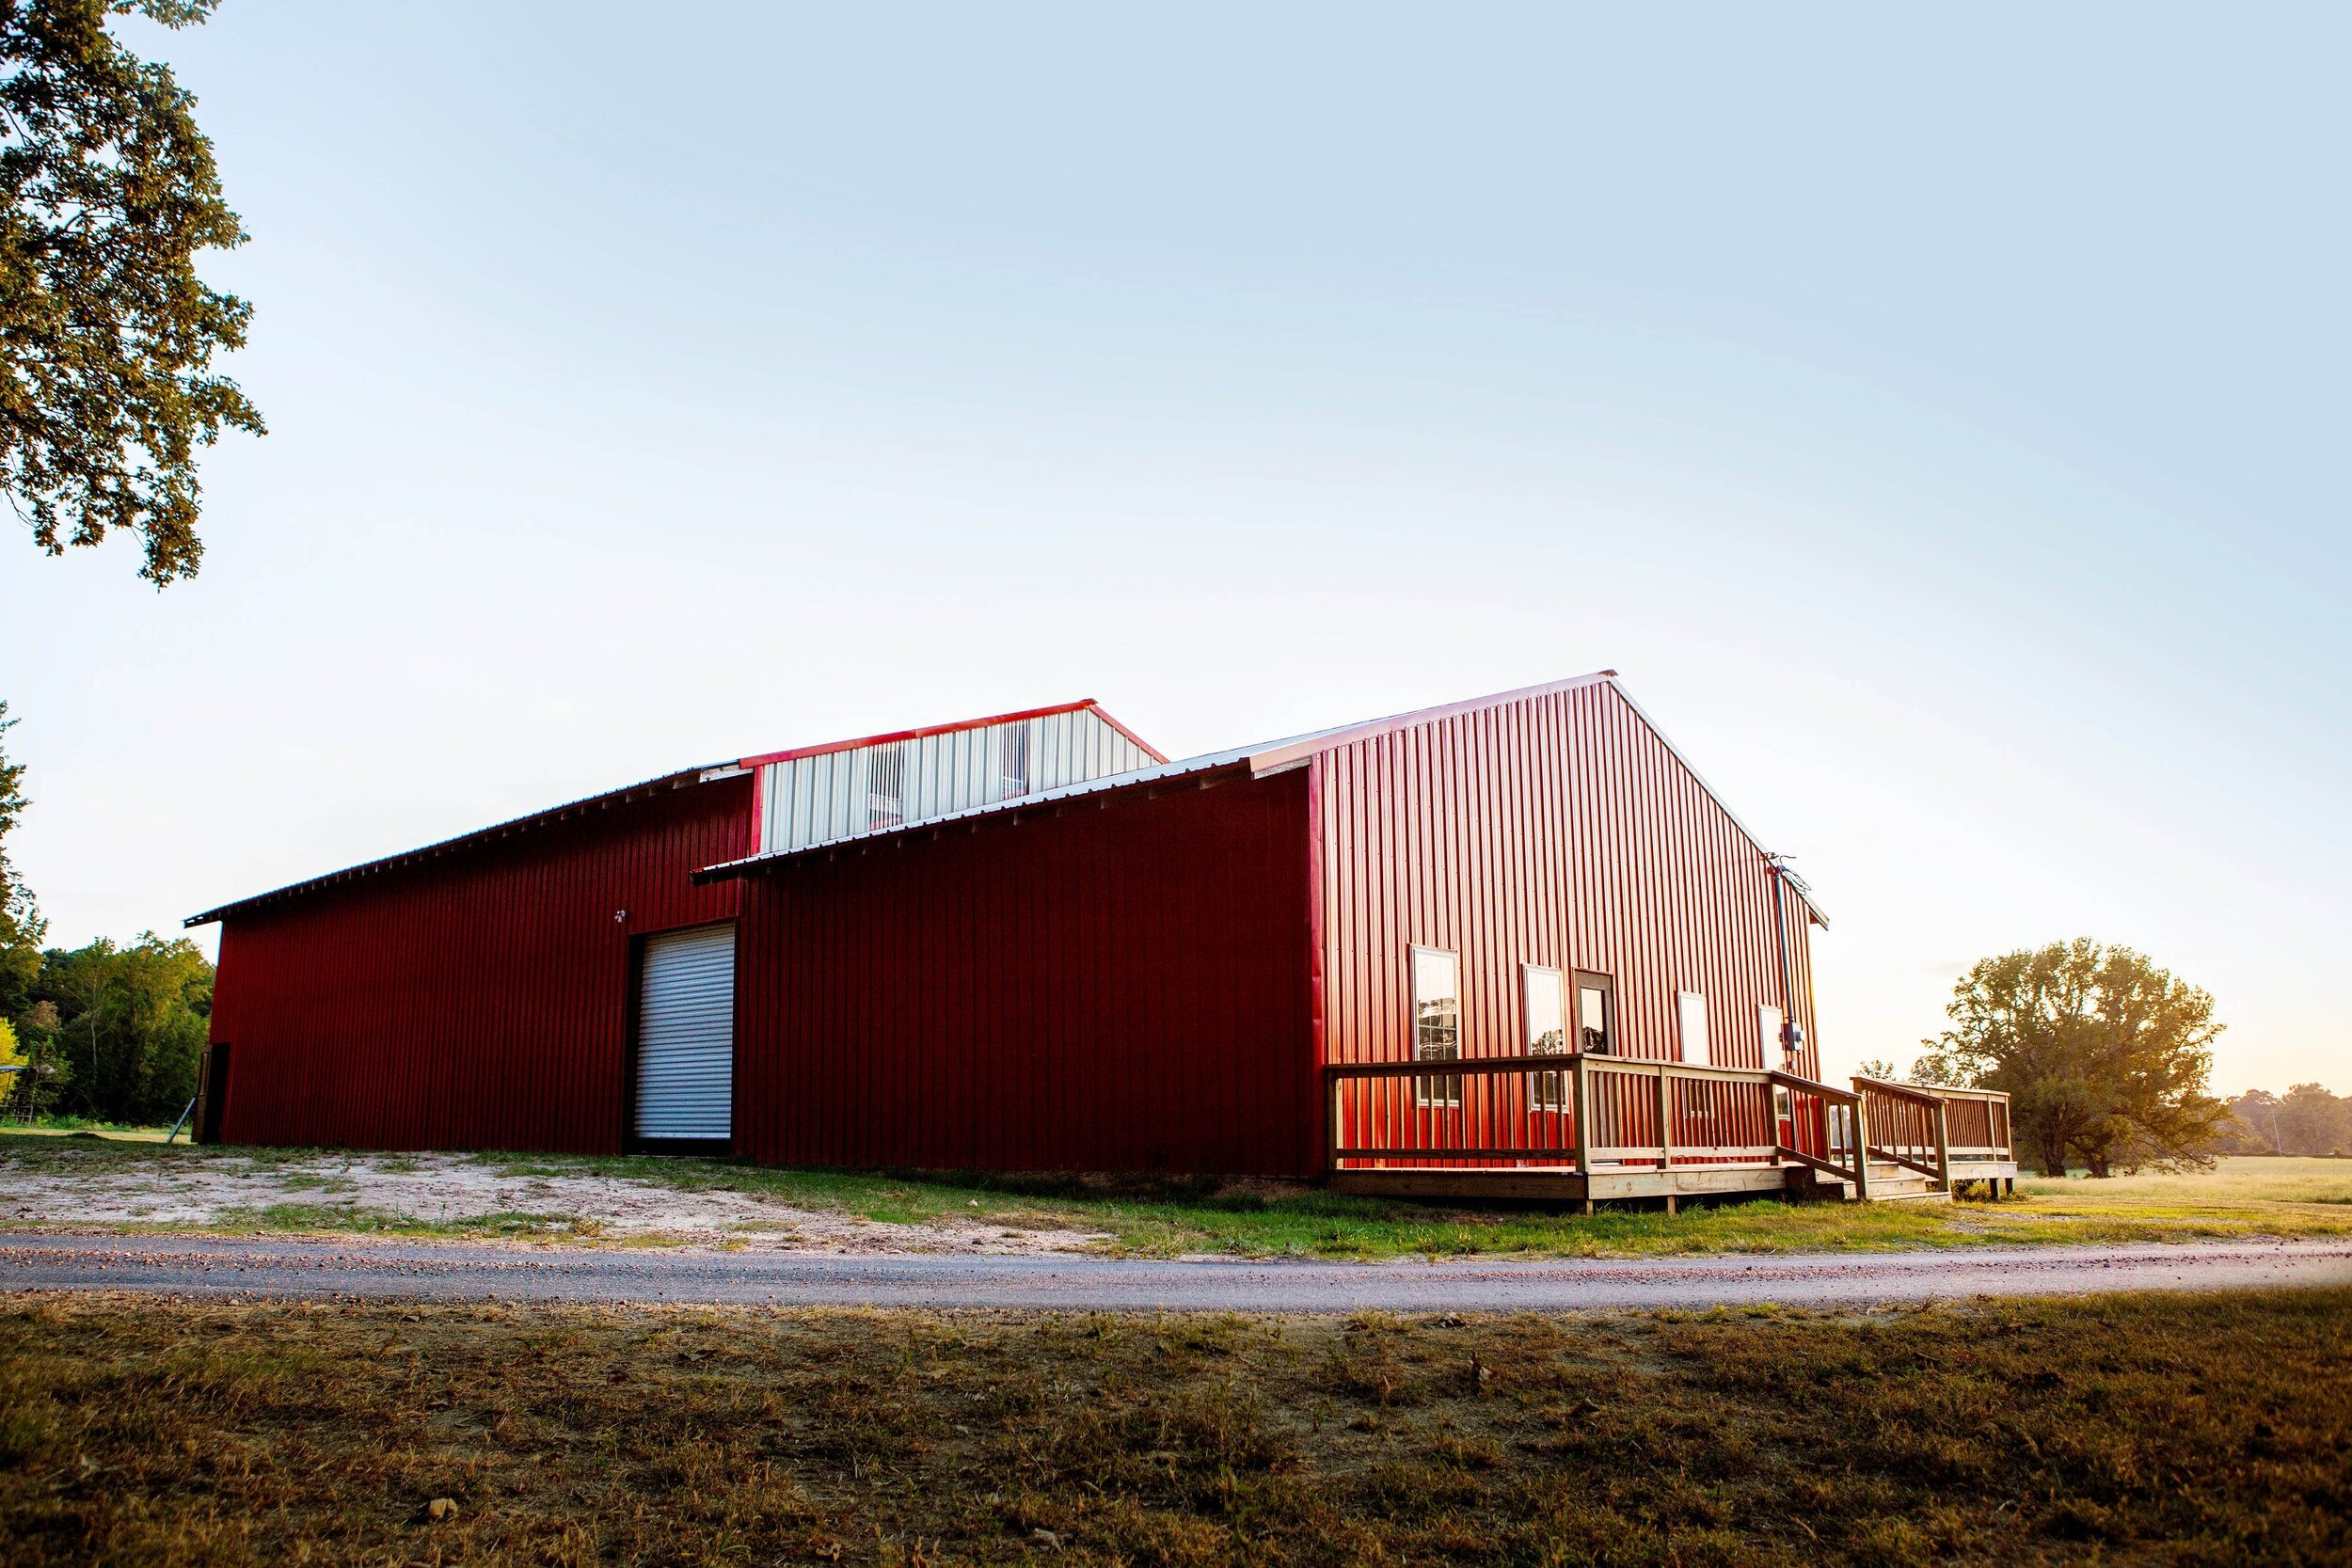 Red River Retrievers' Dog Kennel Facility (Photo by Natalie Haywood)